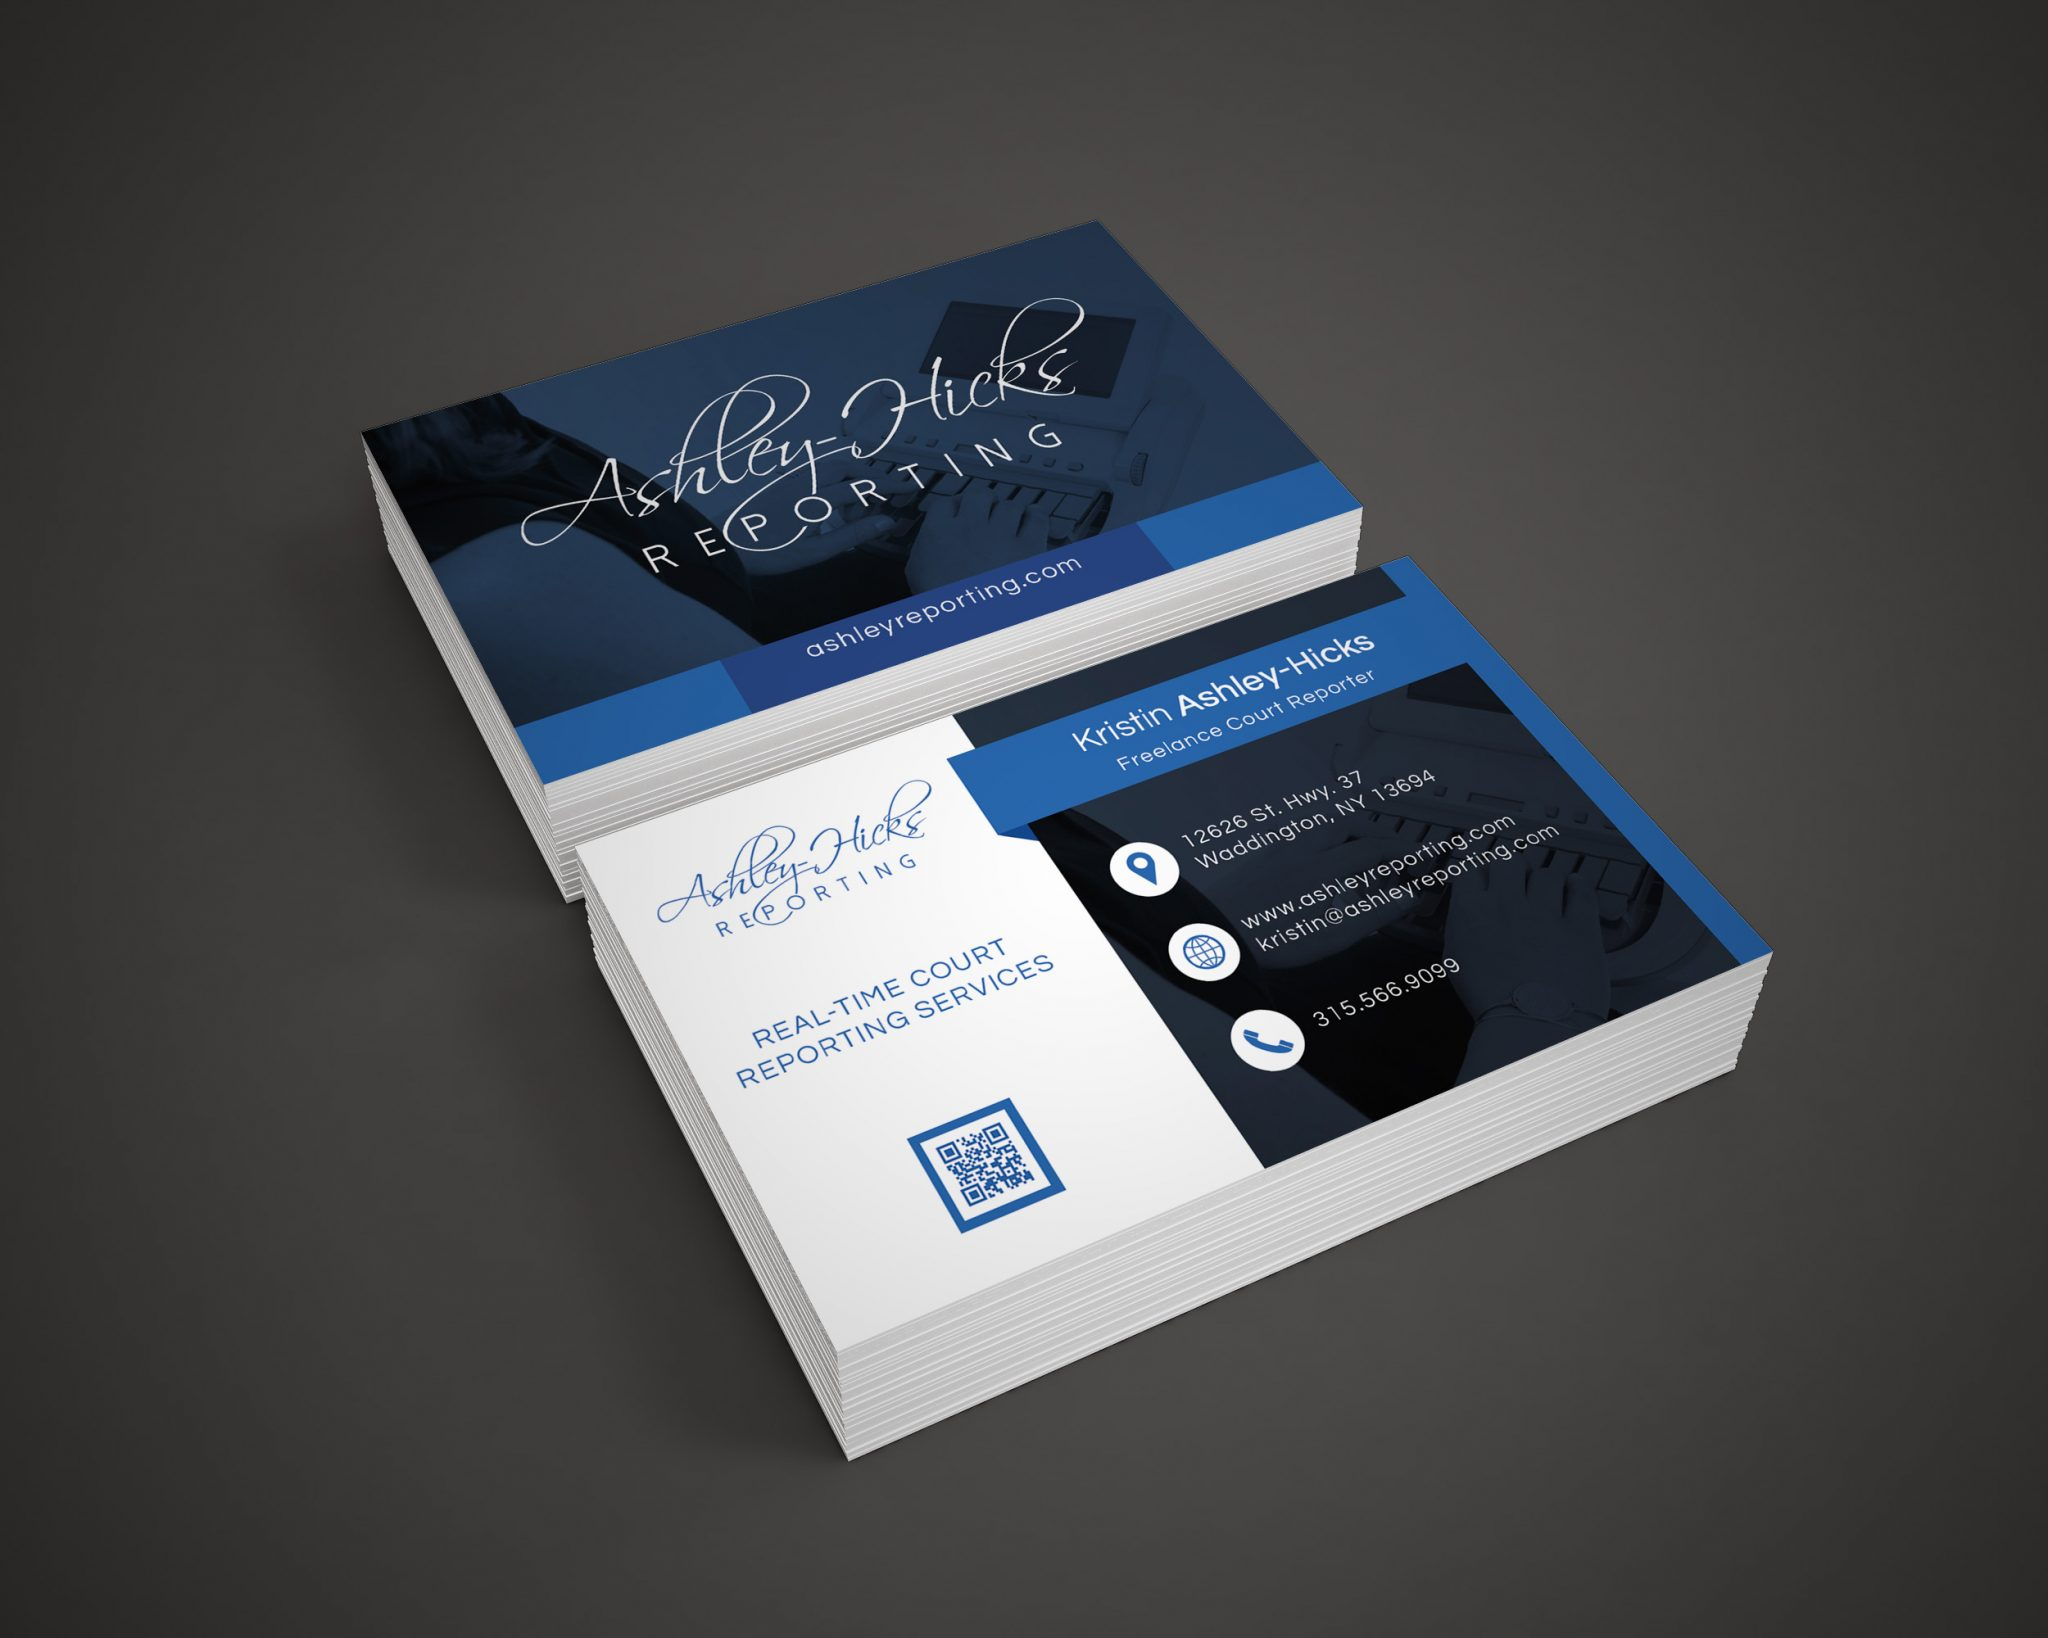 View h3s portfolio online h3 designs massenany 13662 h3 designs ashley hicks reporting business cards reheart